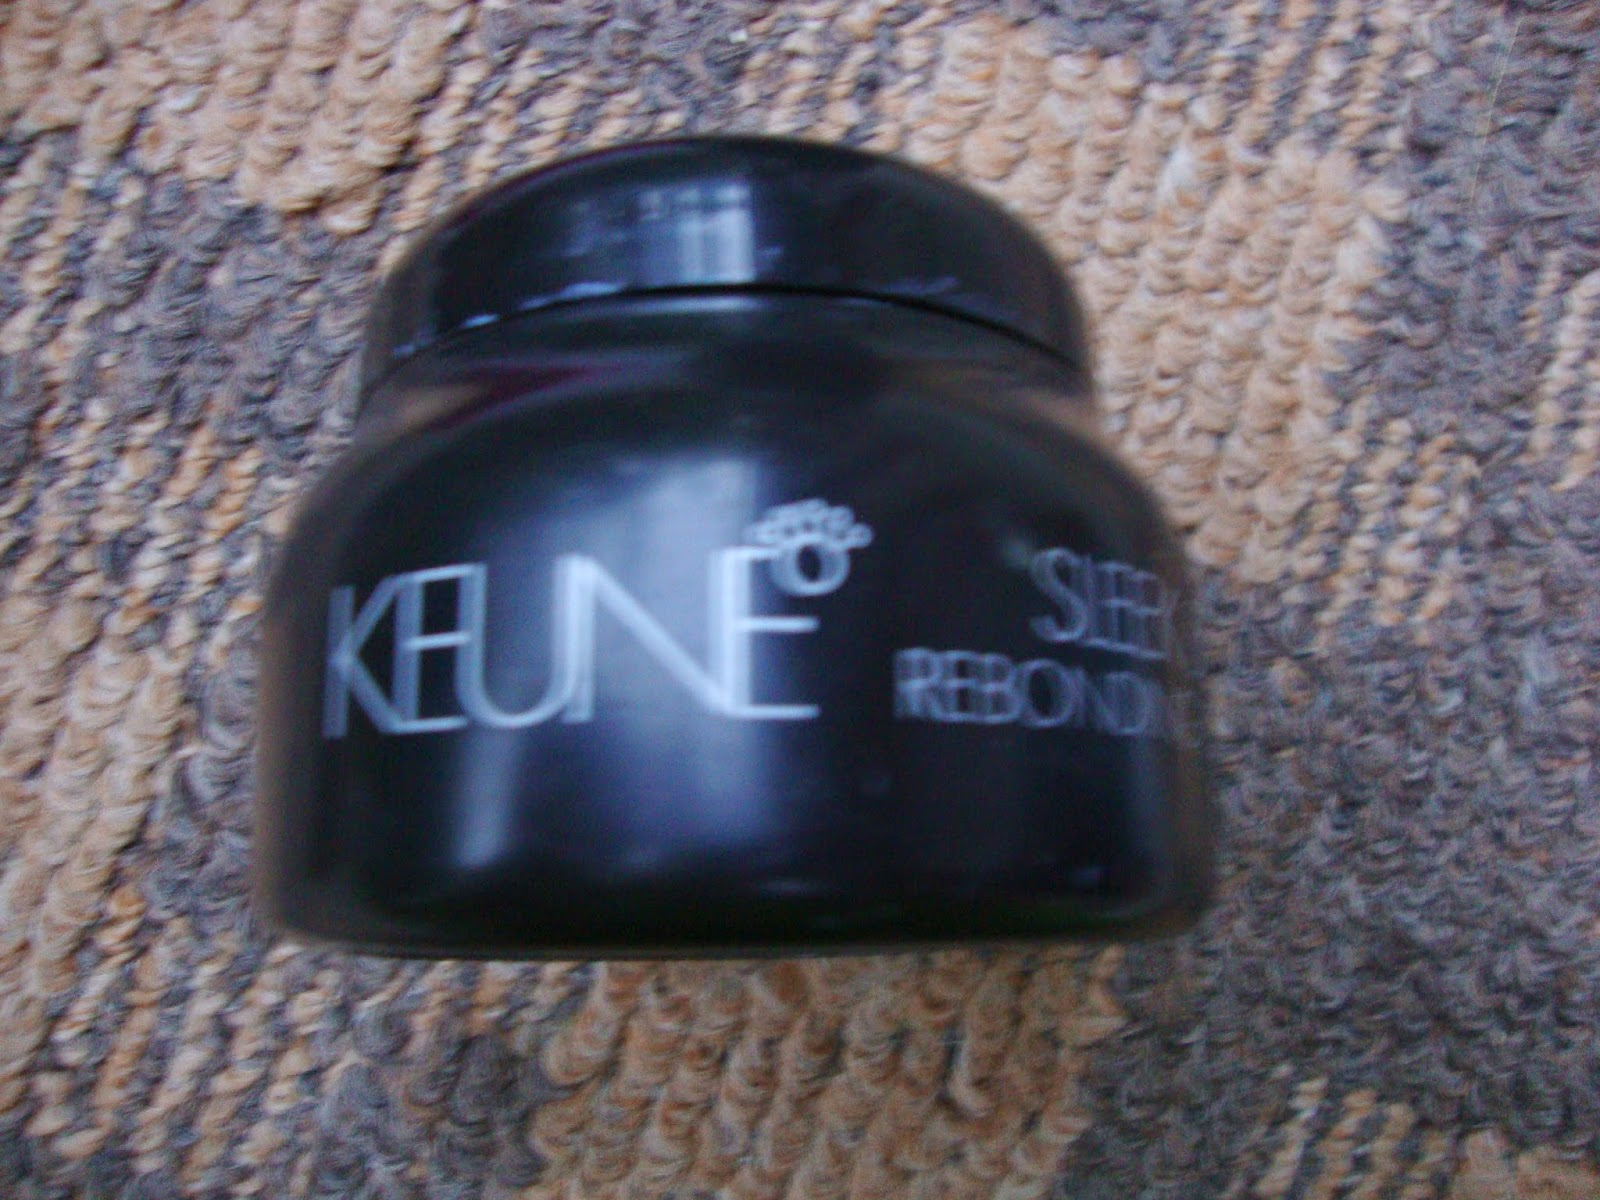 Keune Sleek And Shine Rebonding Conditioner